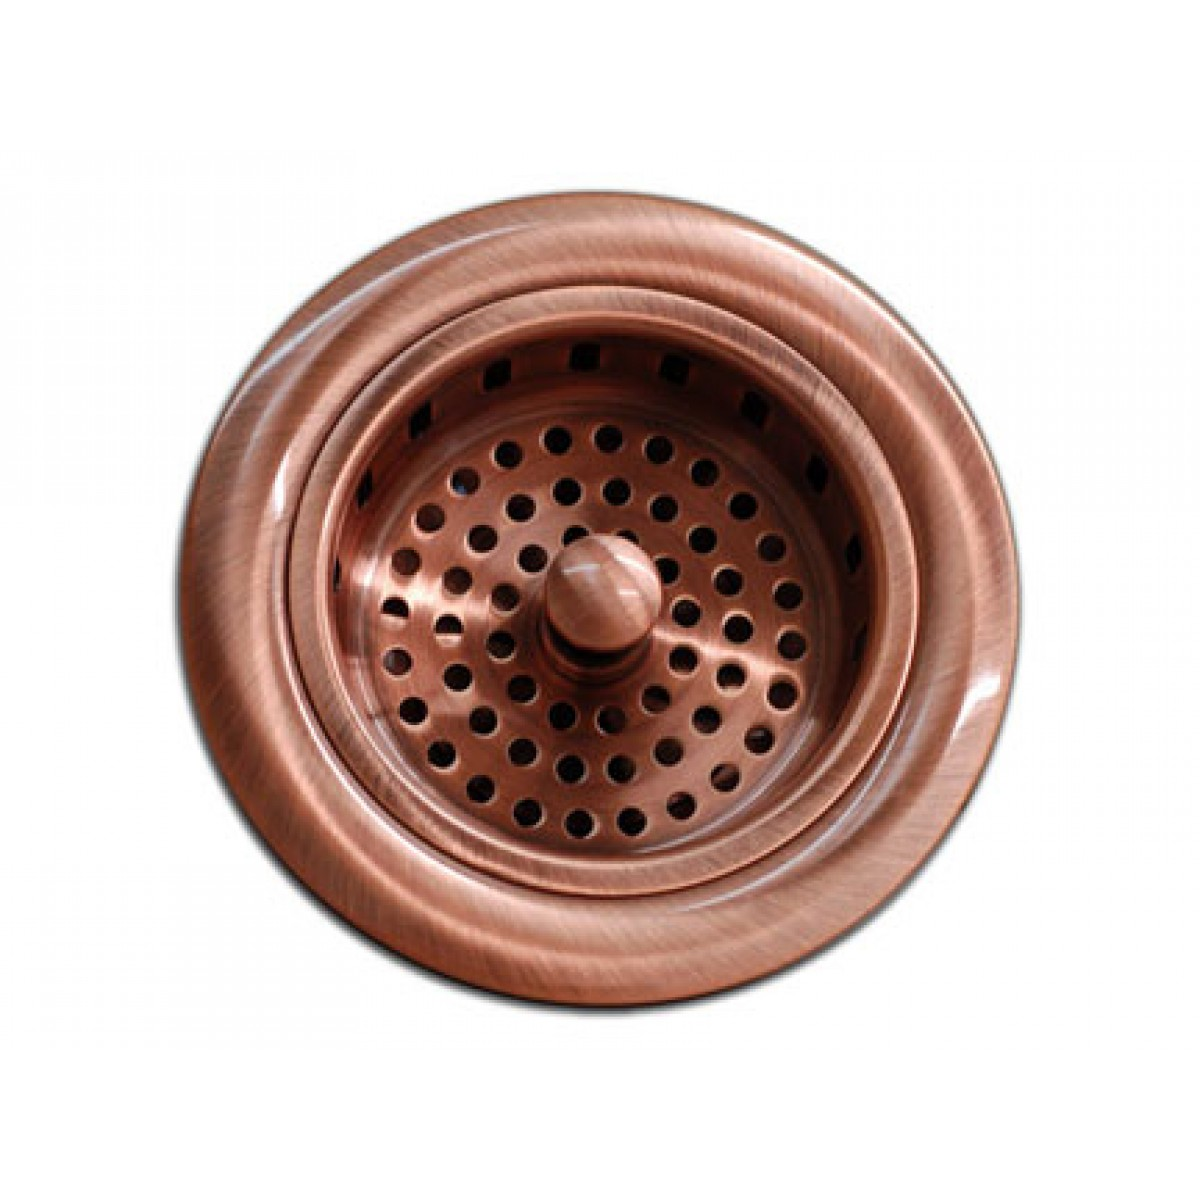 Kitchen Bar Copper Sink Basket Strainer 3 5 Inch